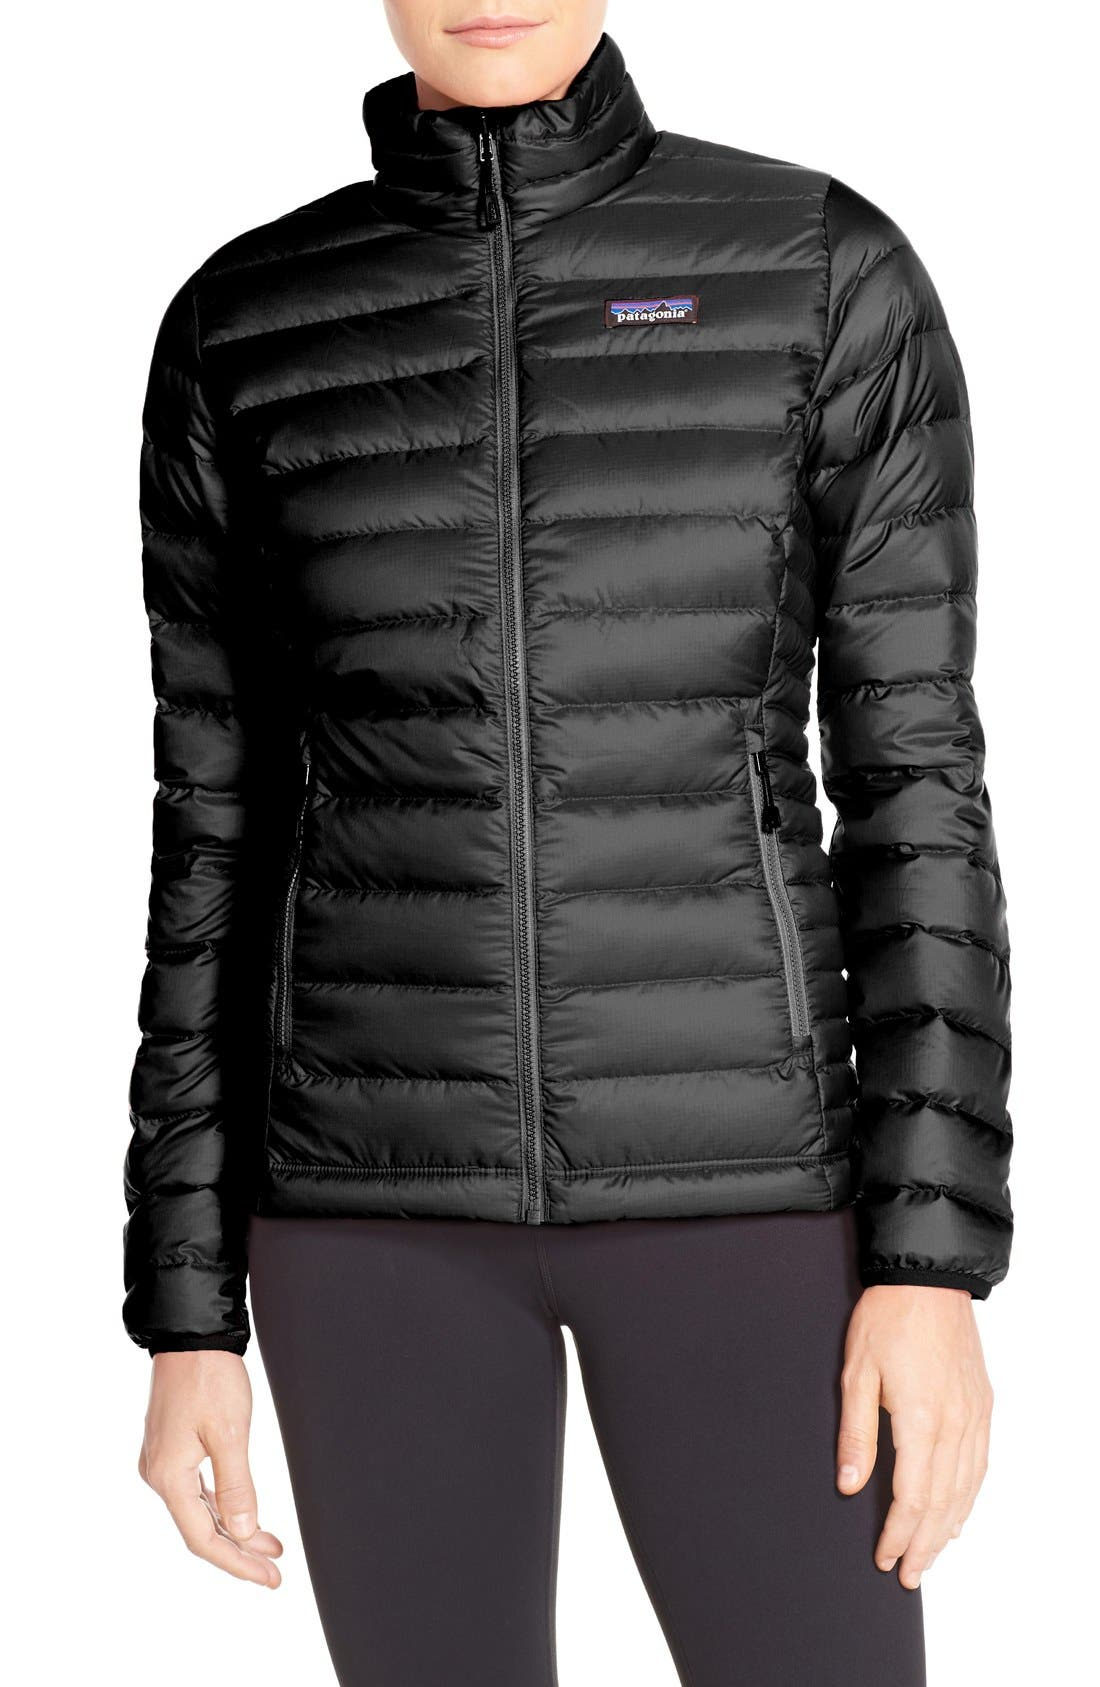 Patagonia Down Jacket, Black